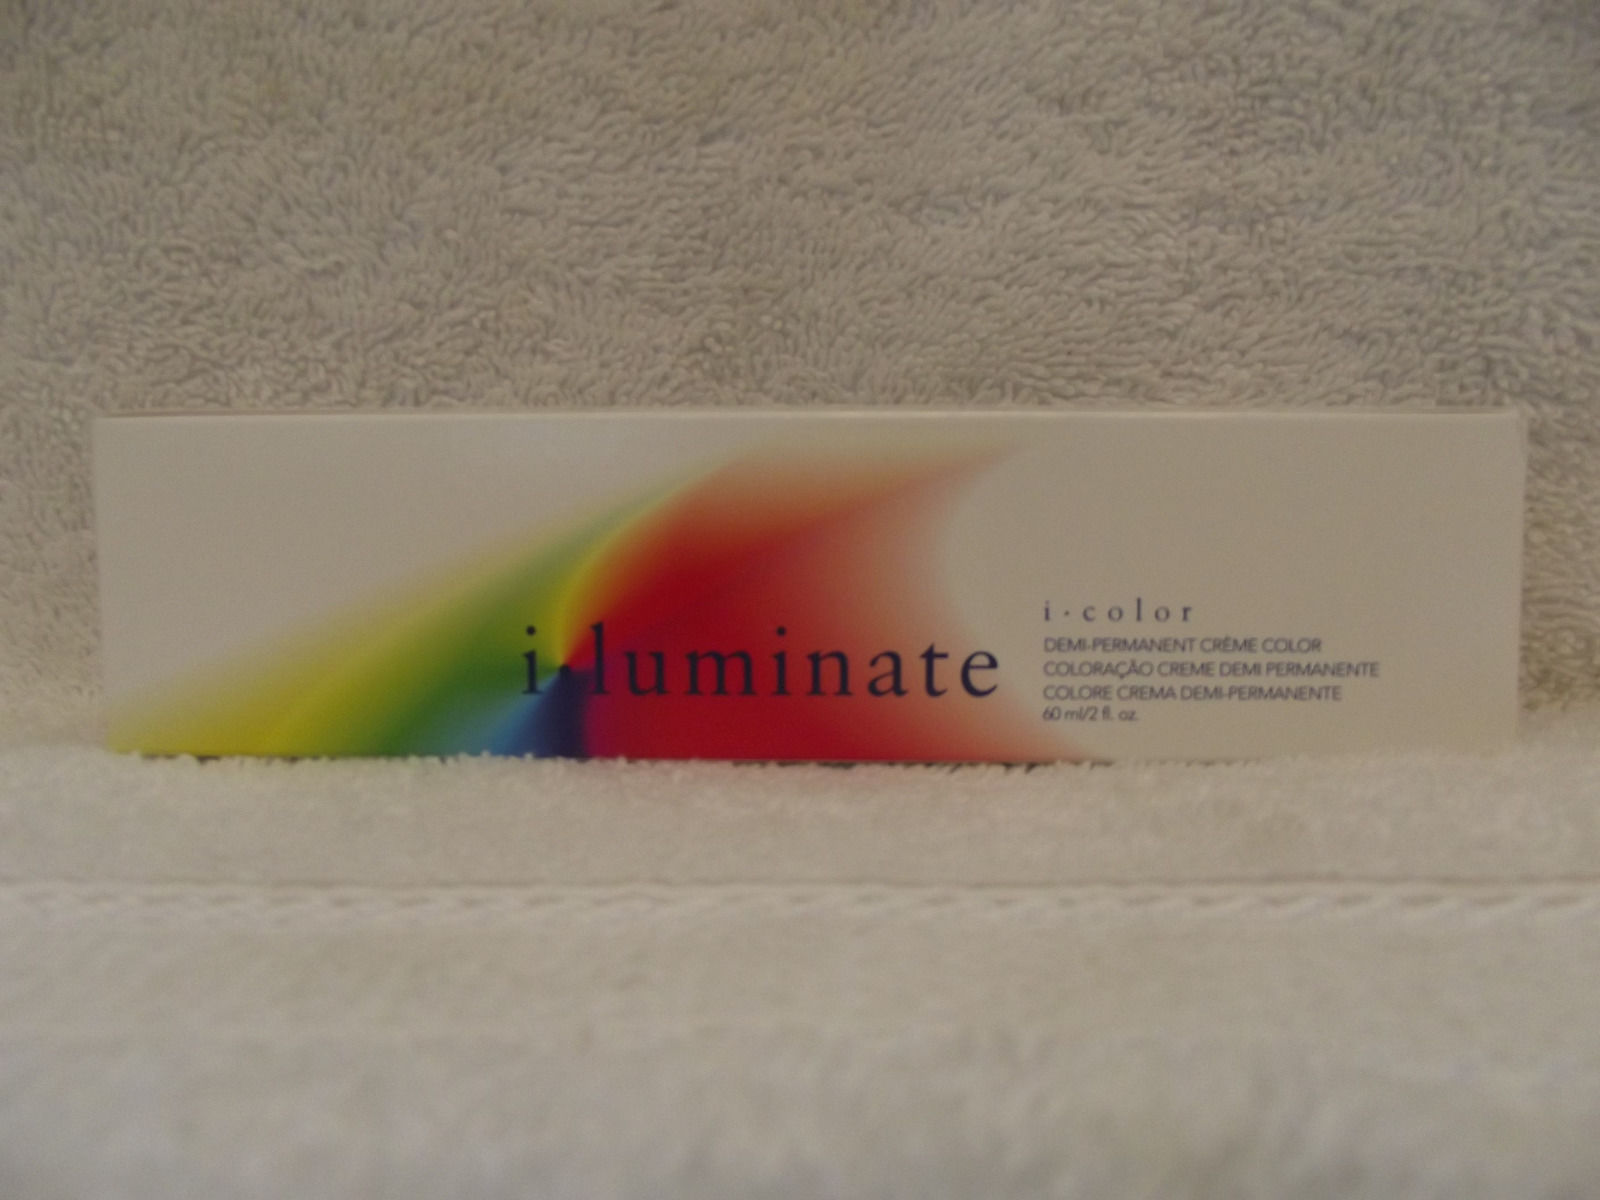 ISO I-LUMINATE Professional No PPD Demi-Permanent Cream Hair Color ~ 2 fl oz!!